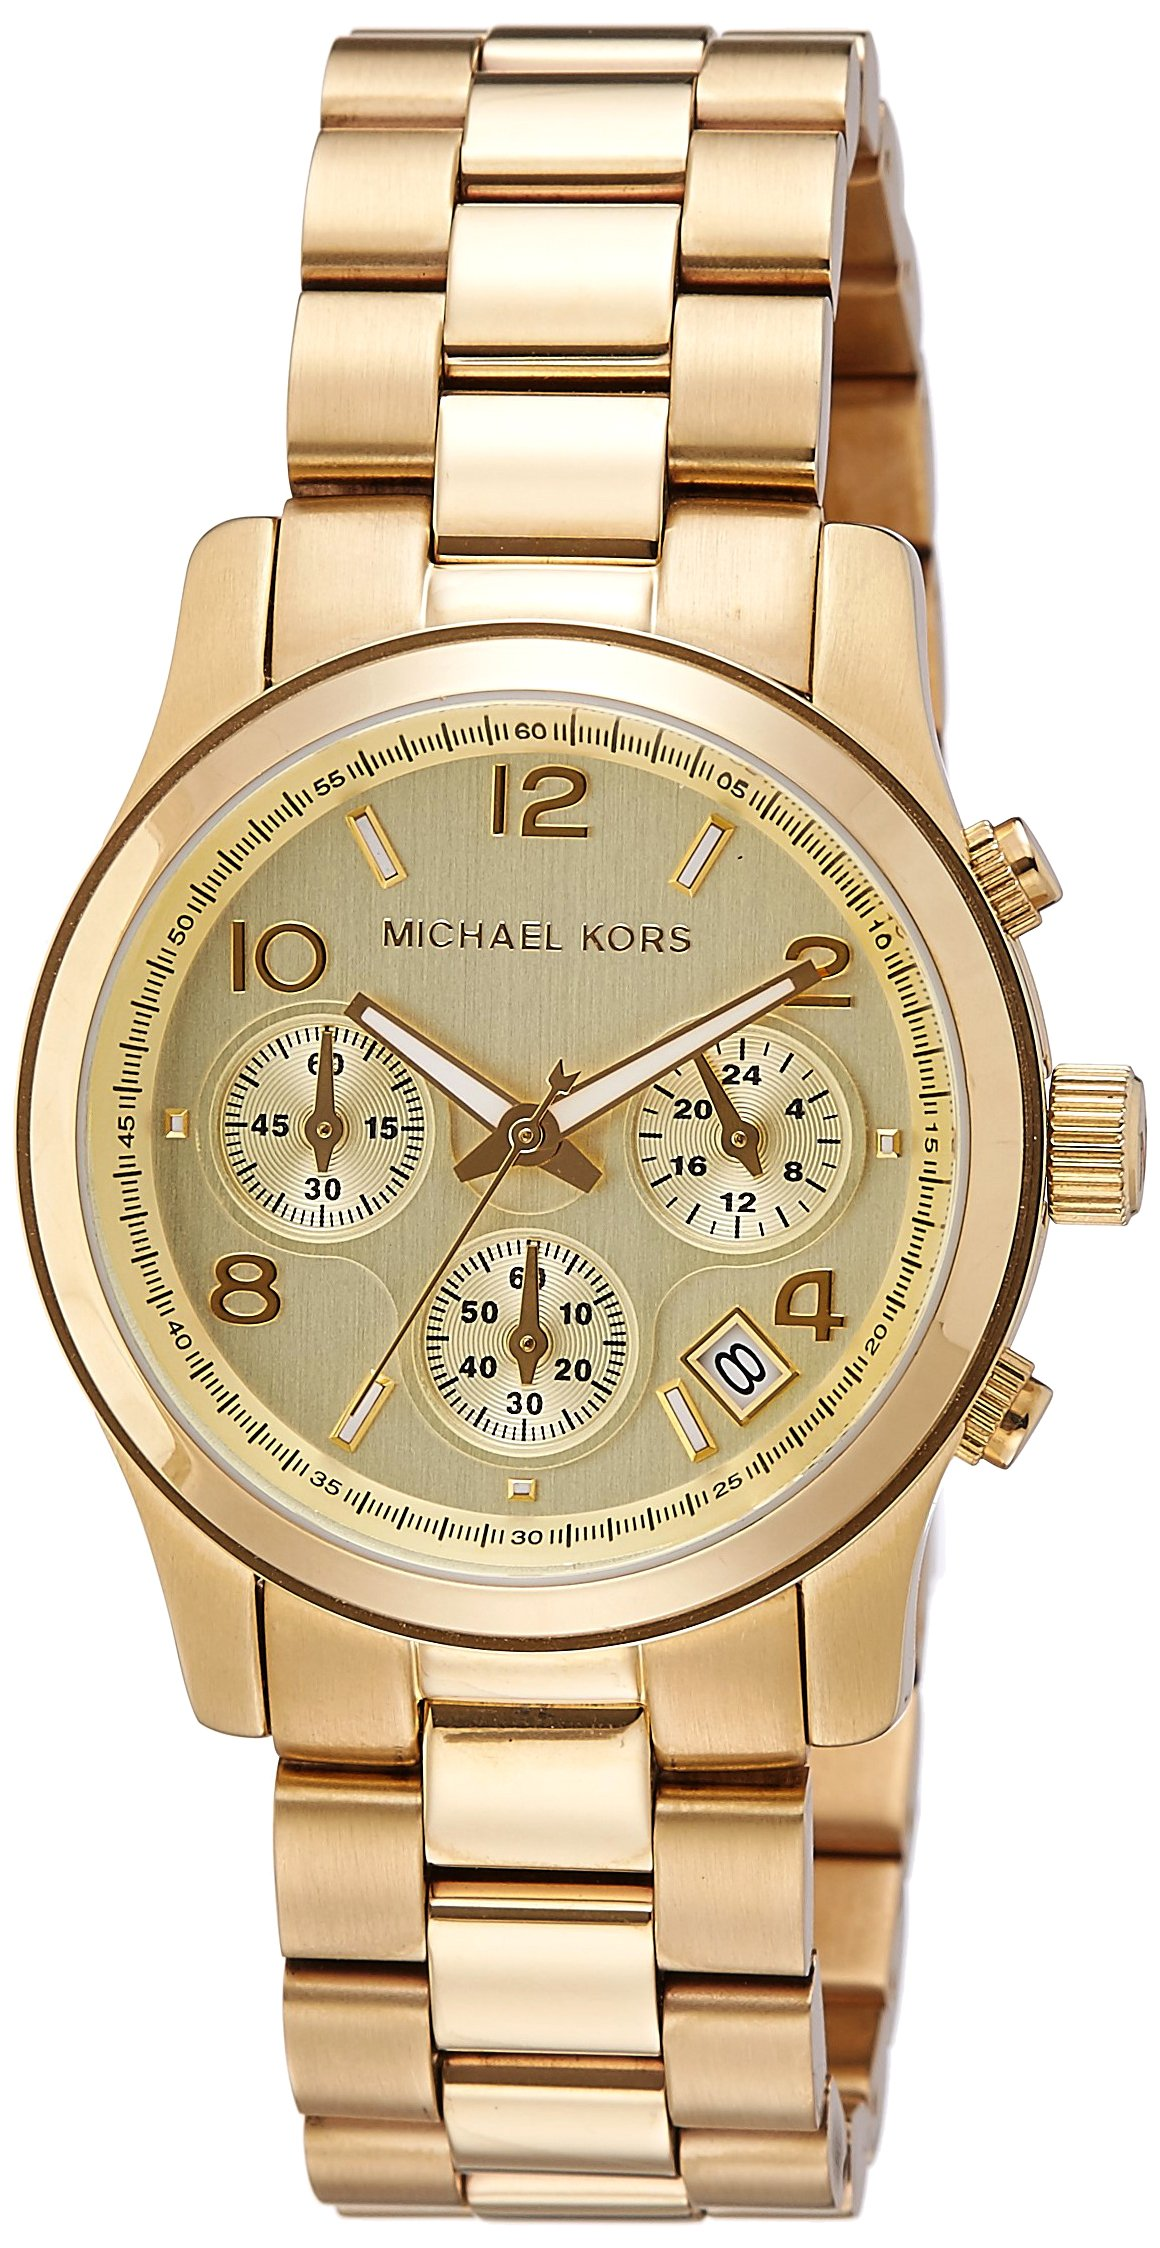 Michael Kors Midsized Chronograph Gold Tone Womens Watch MK5055 by Michael Kors